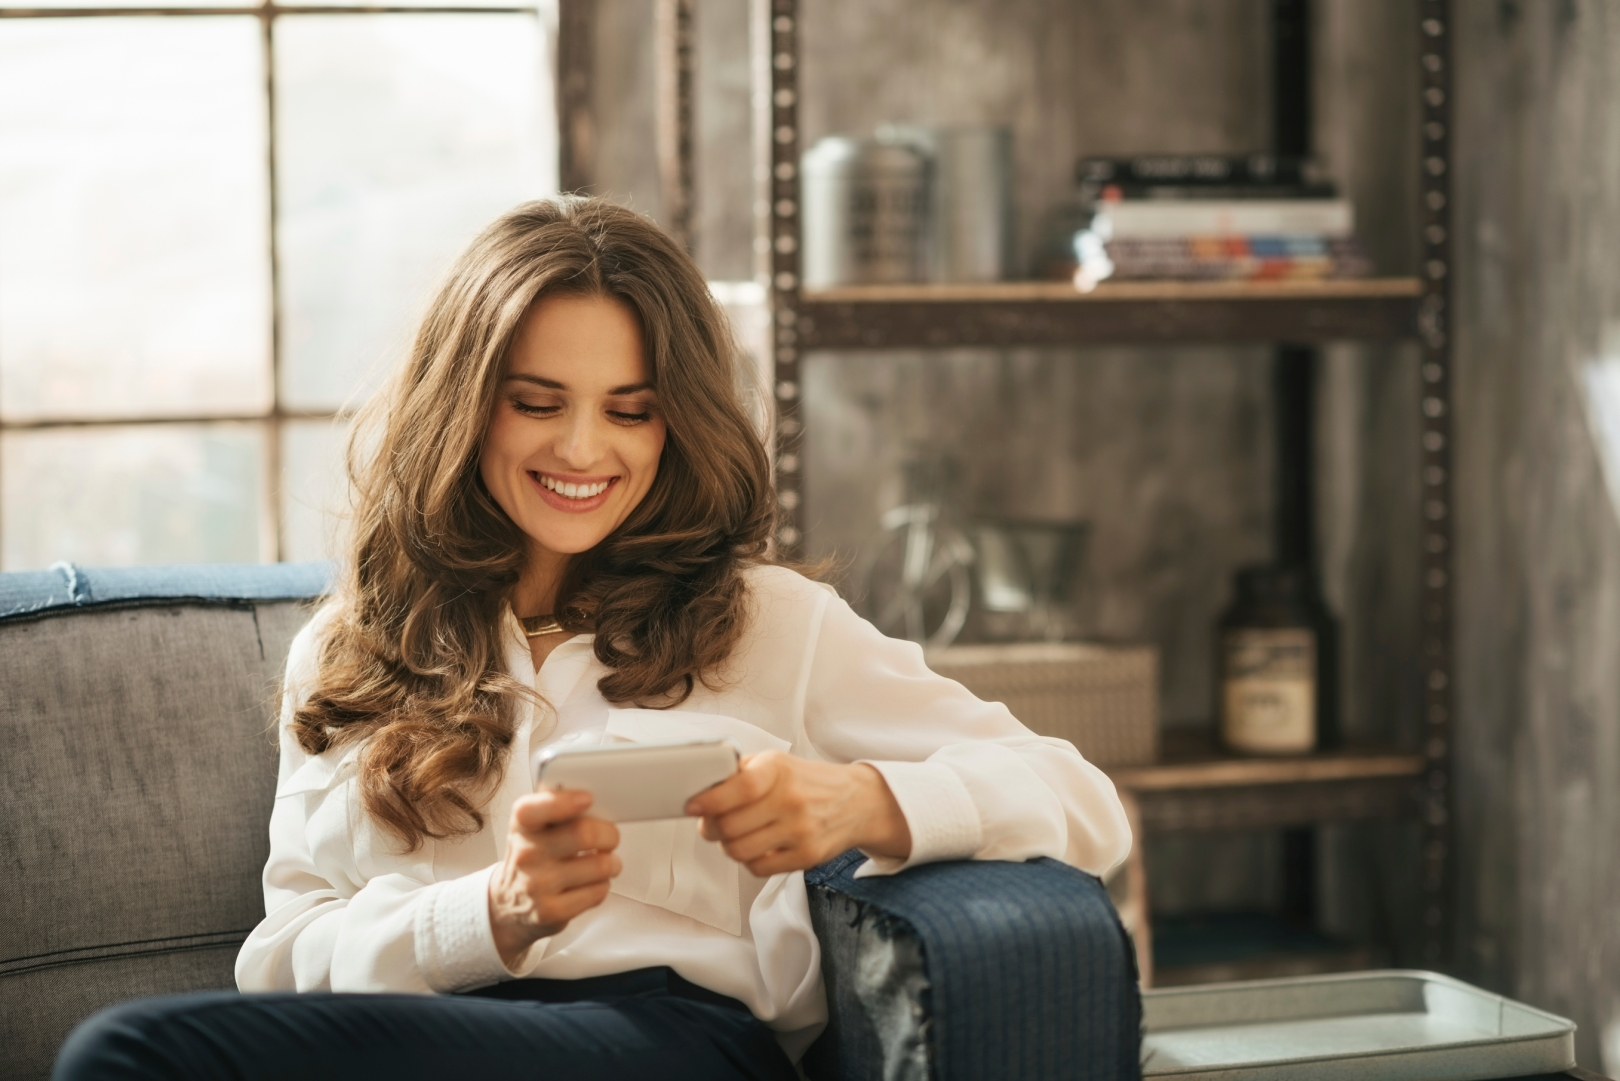 Stylish brunet woman is playing with smartphone sitting on divan in loft apartment